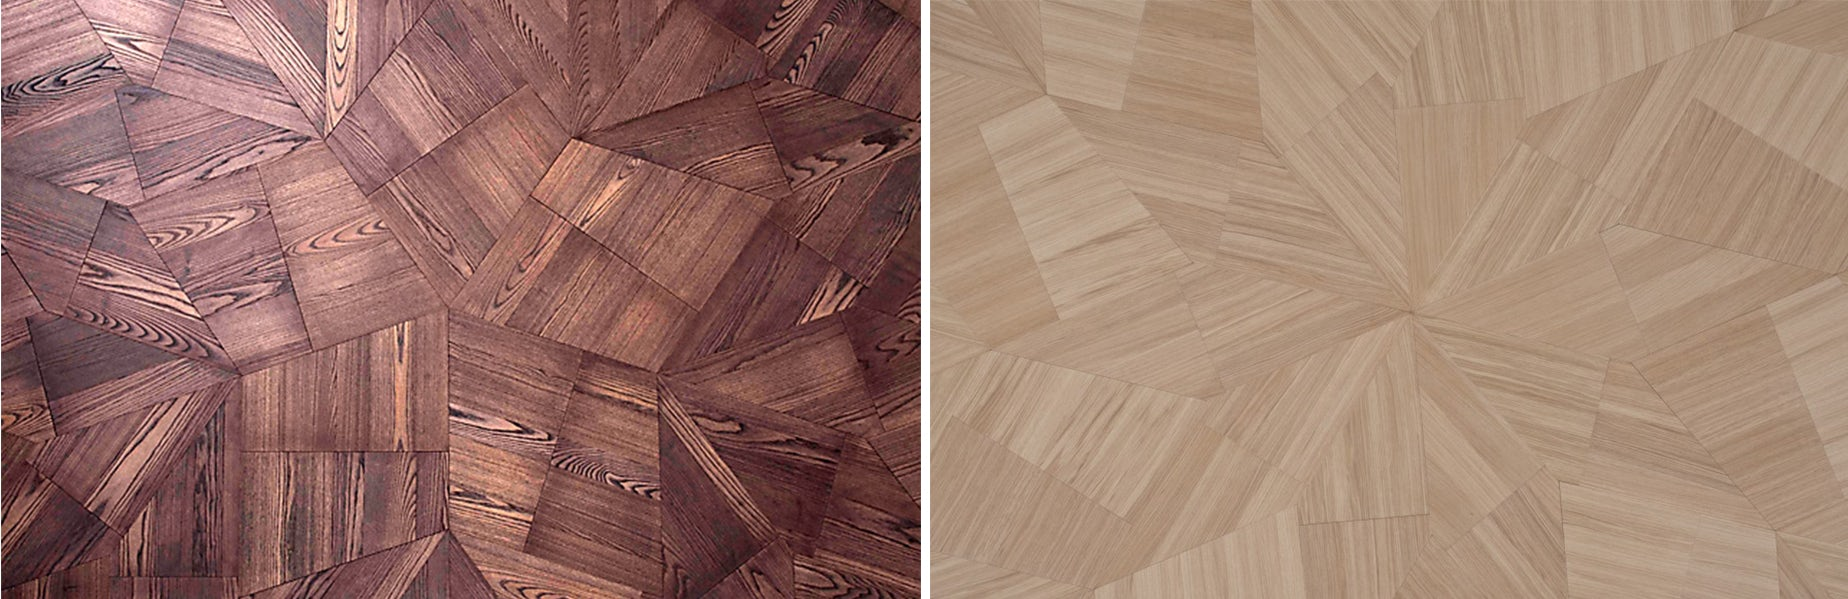 How to Craft Geometric Wood Flooring Like You've Never Seen Before